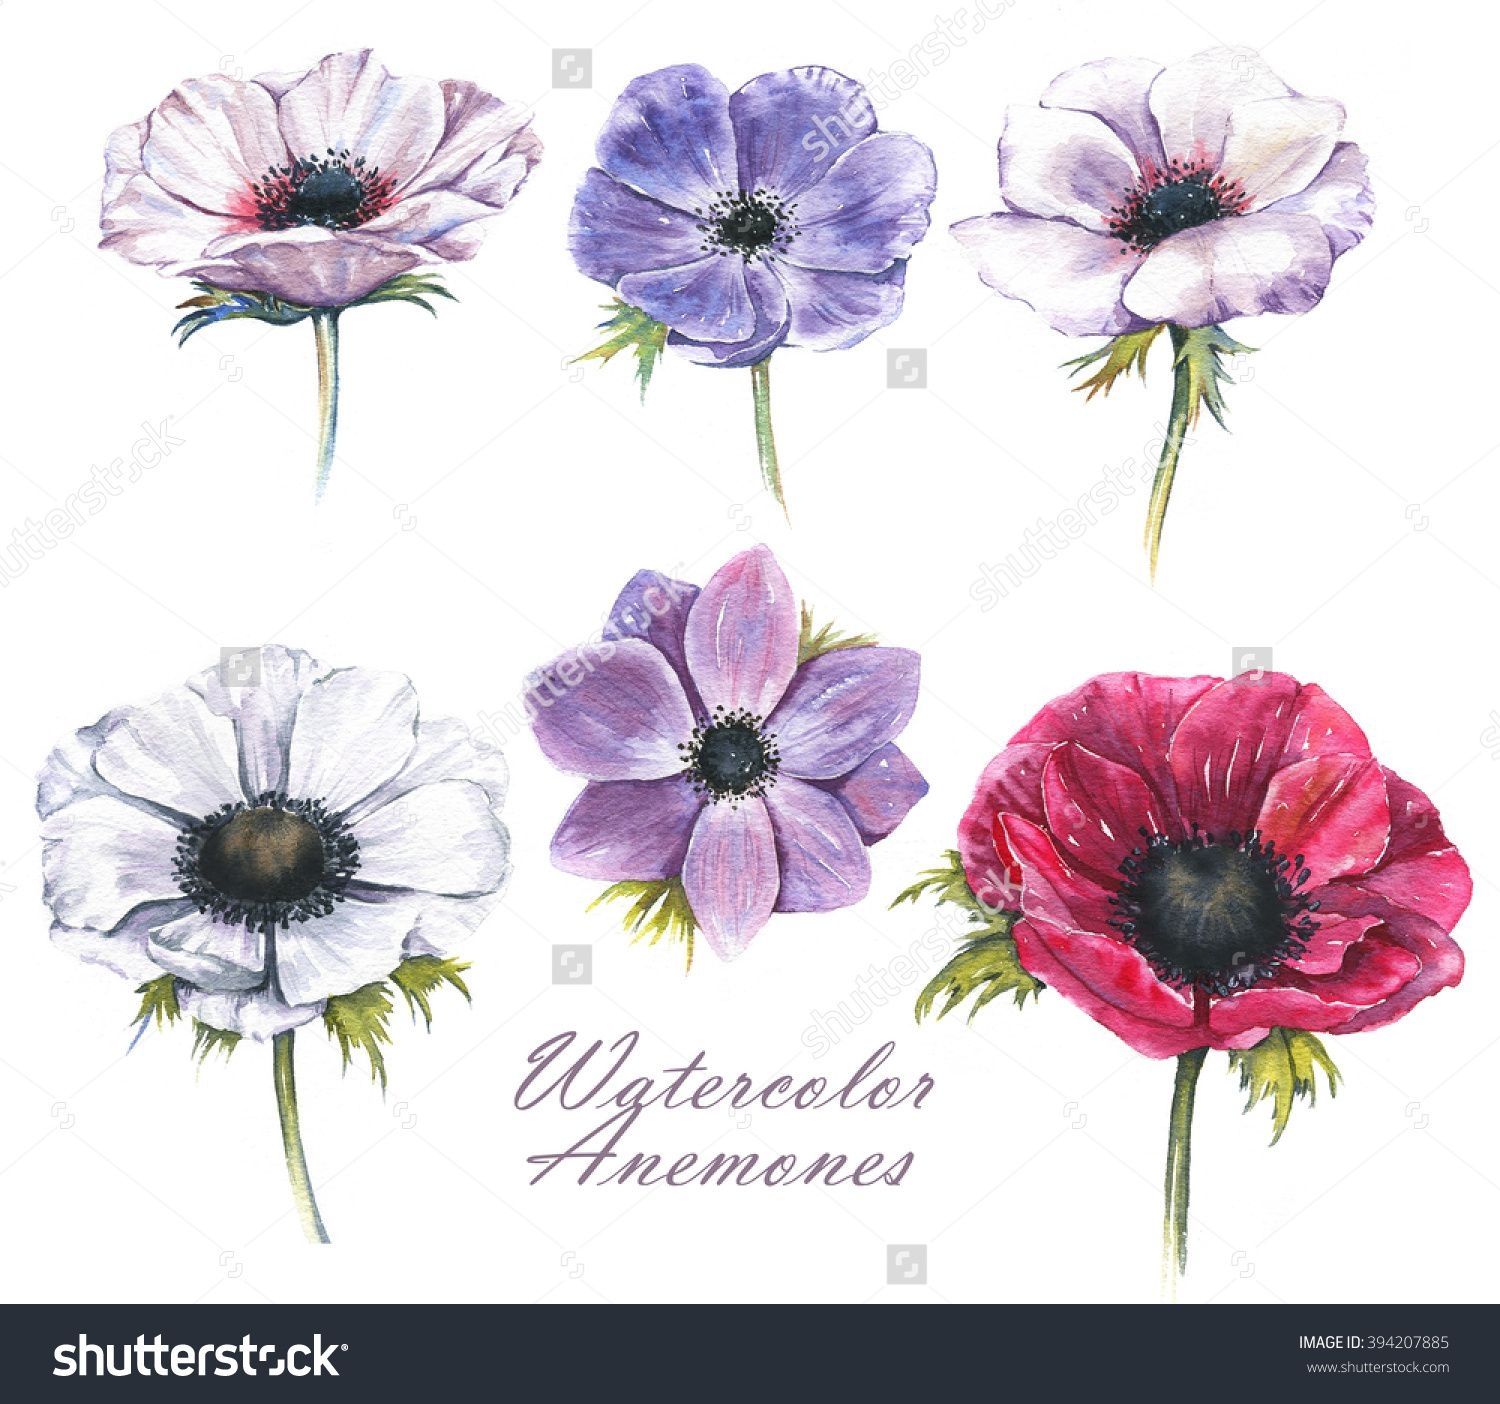 Pin By Mirella Brai On Spring Plant Drawing Anemone Tattoo Flower Painting